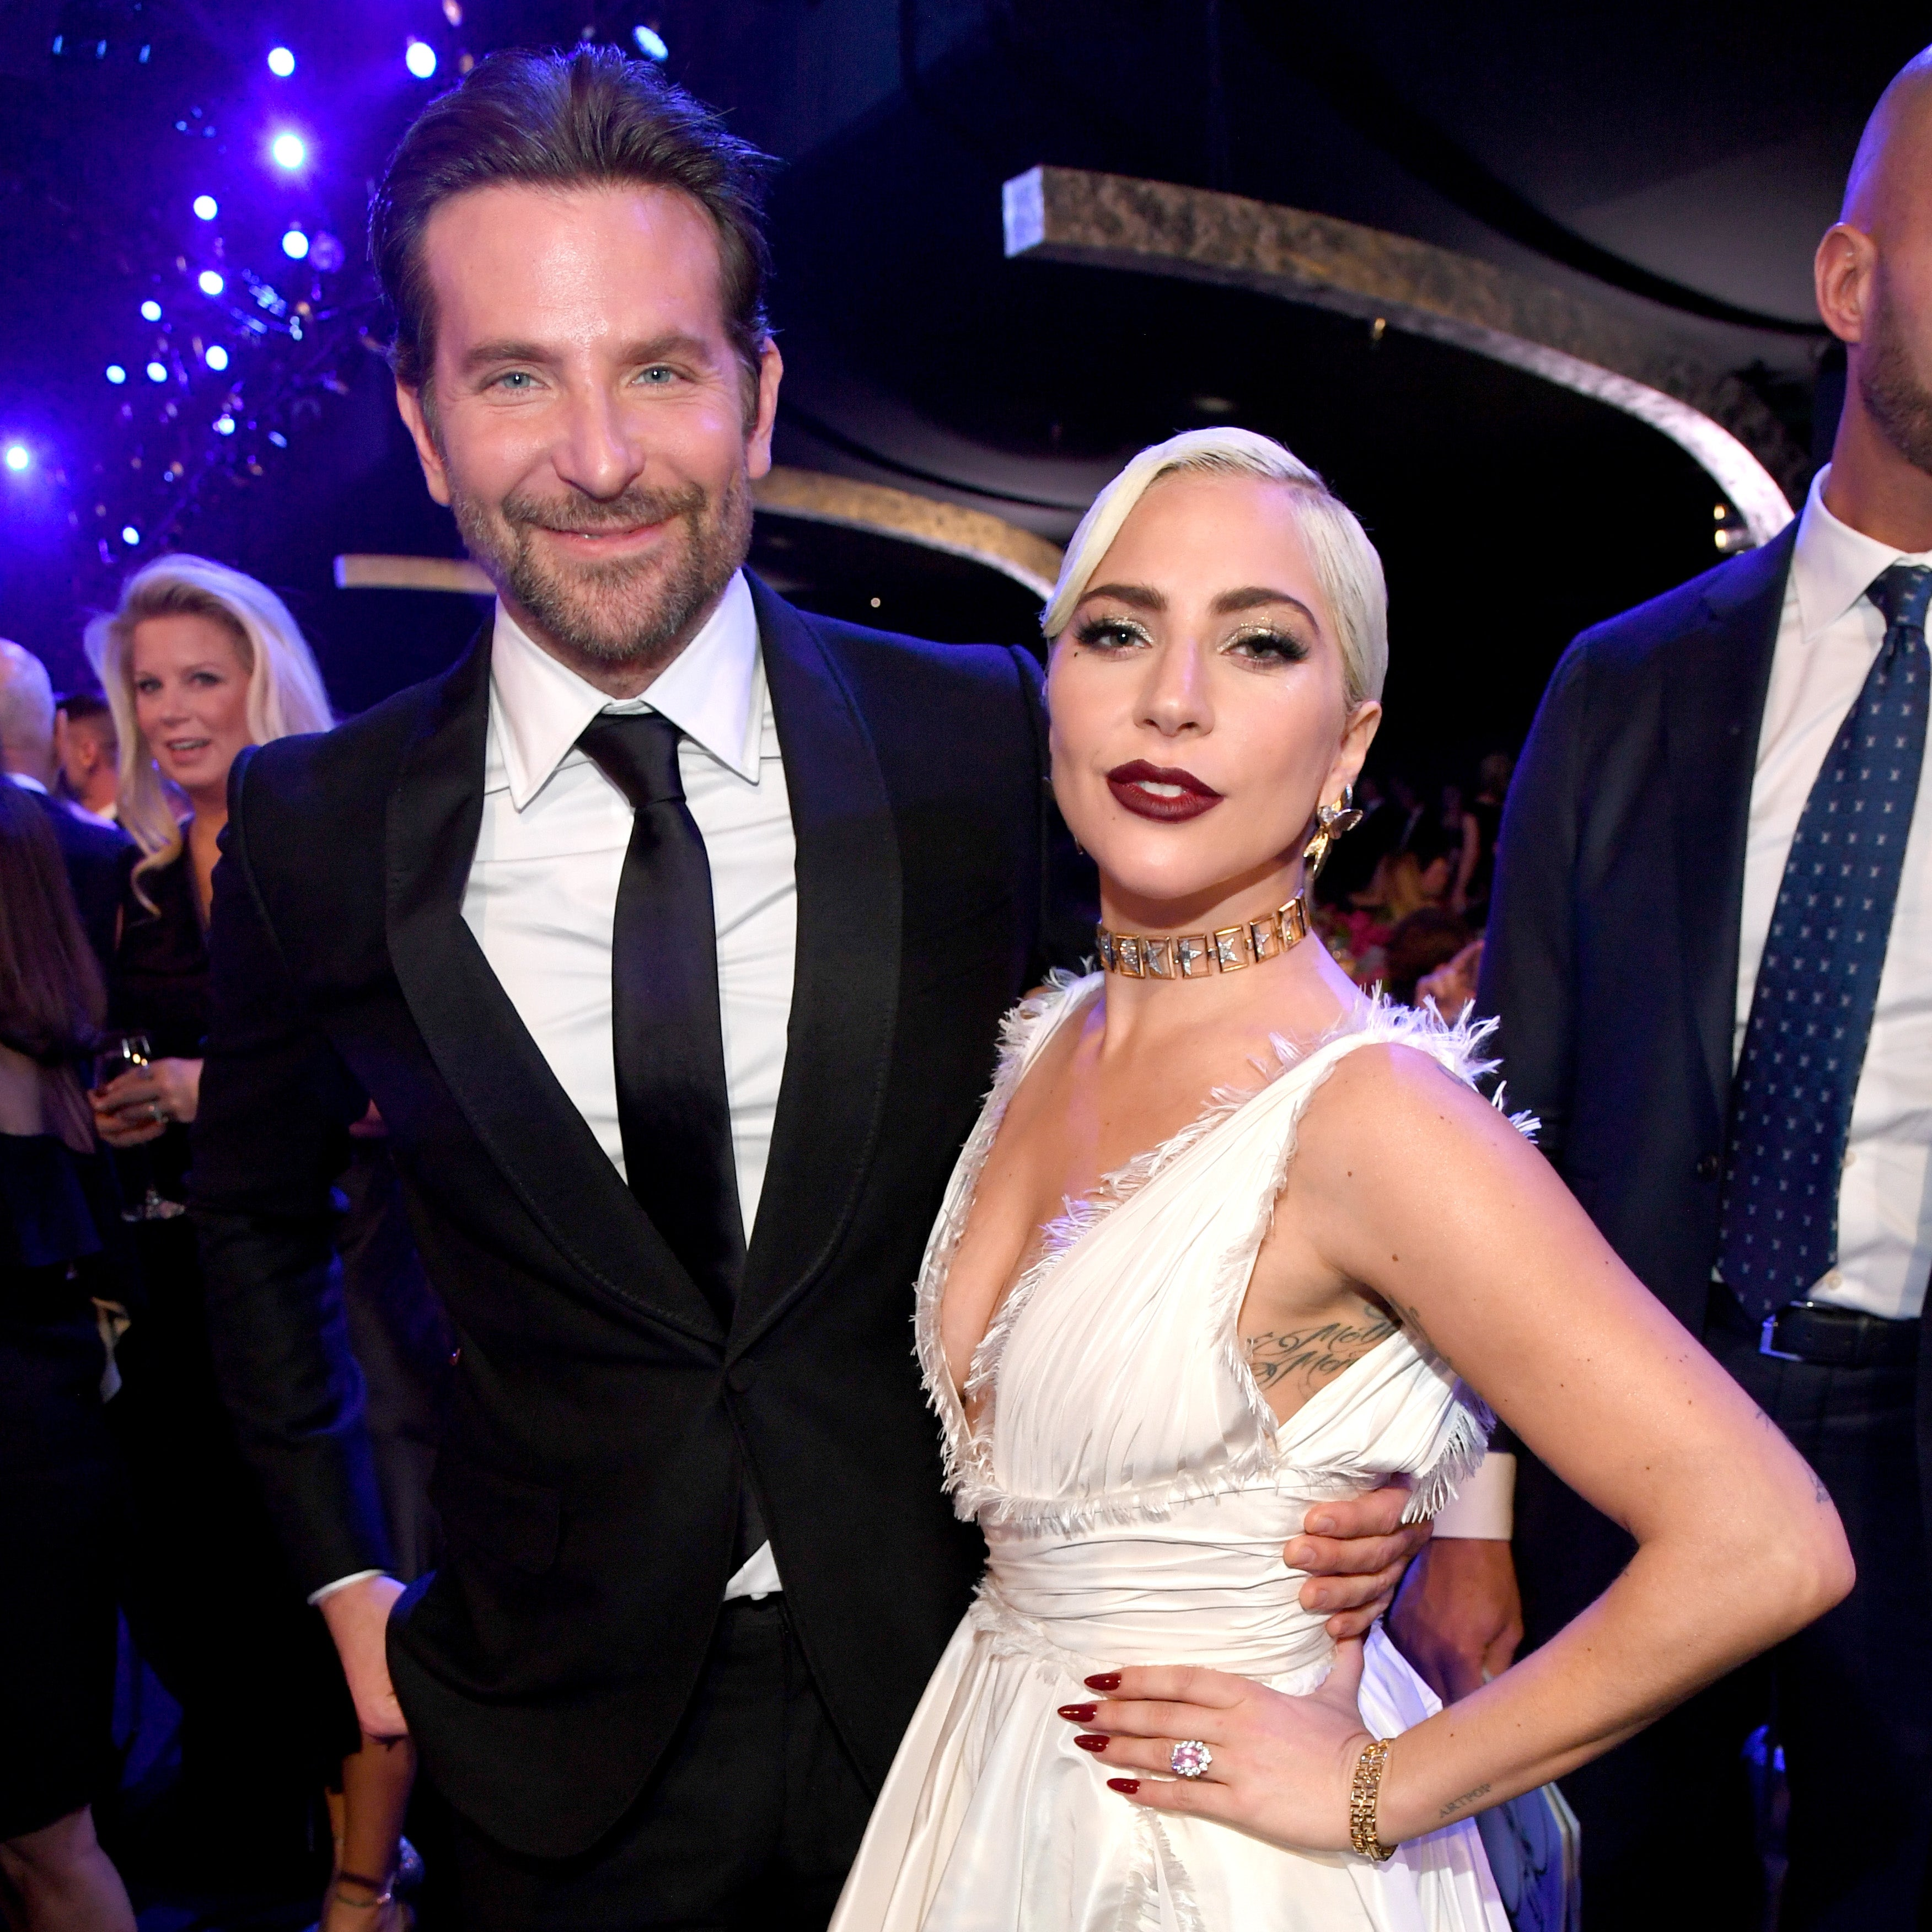 How 'A Star Is Born' Affected Both Bradley Cooper and Lady